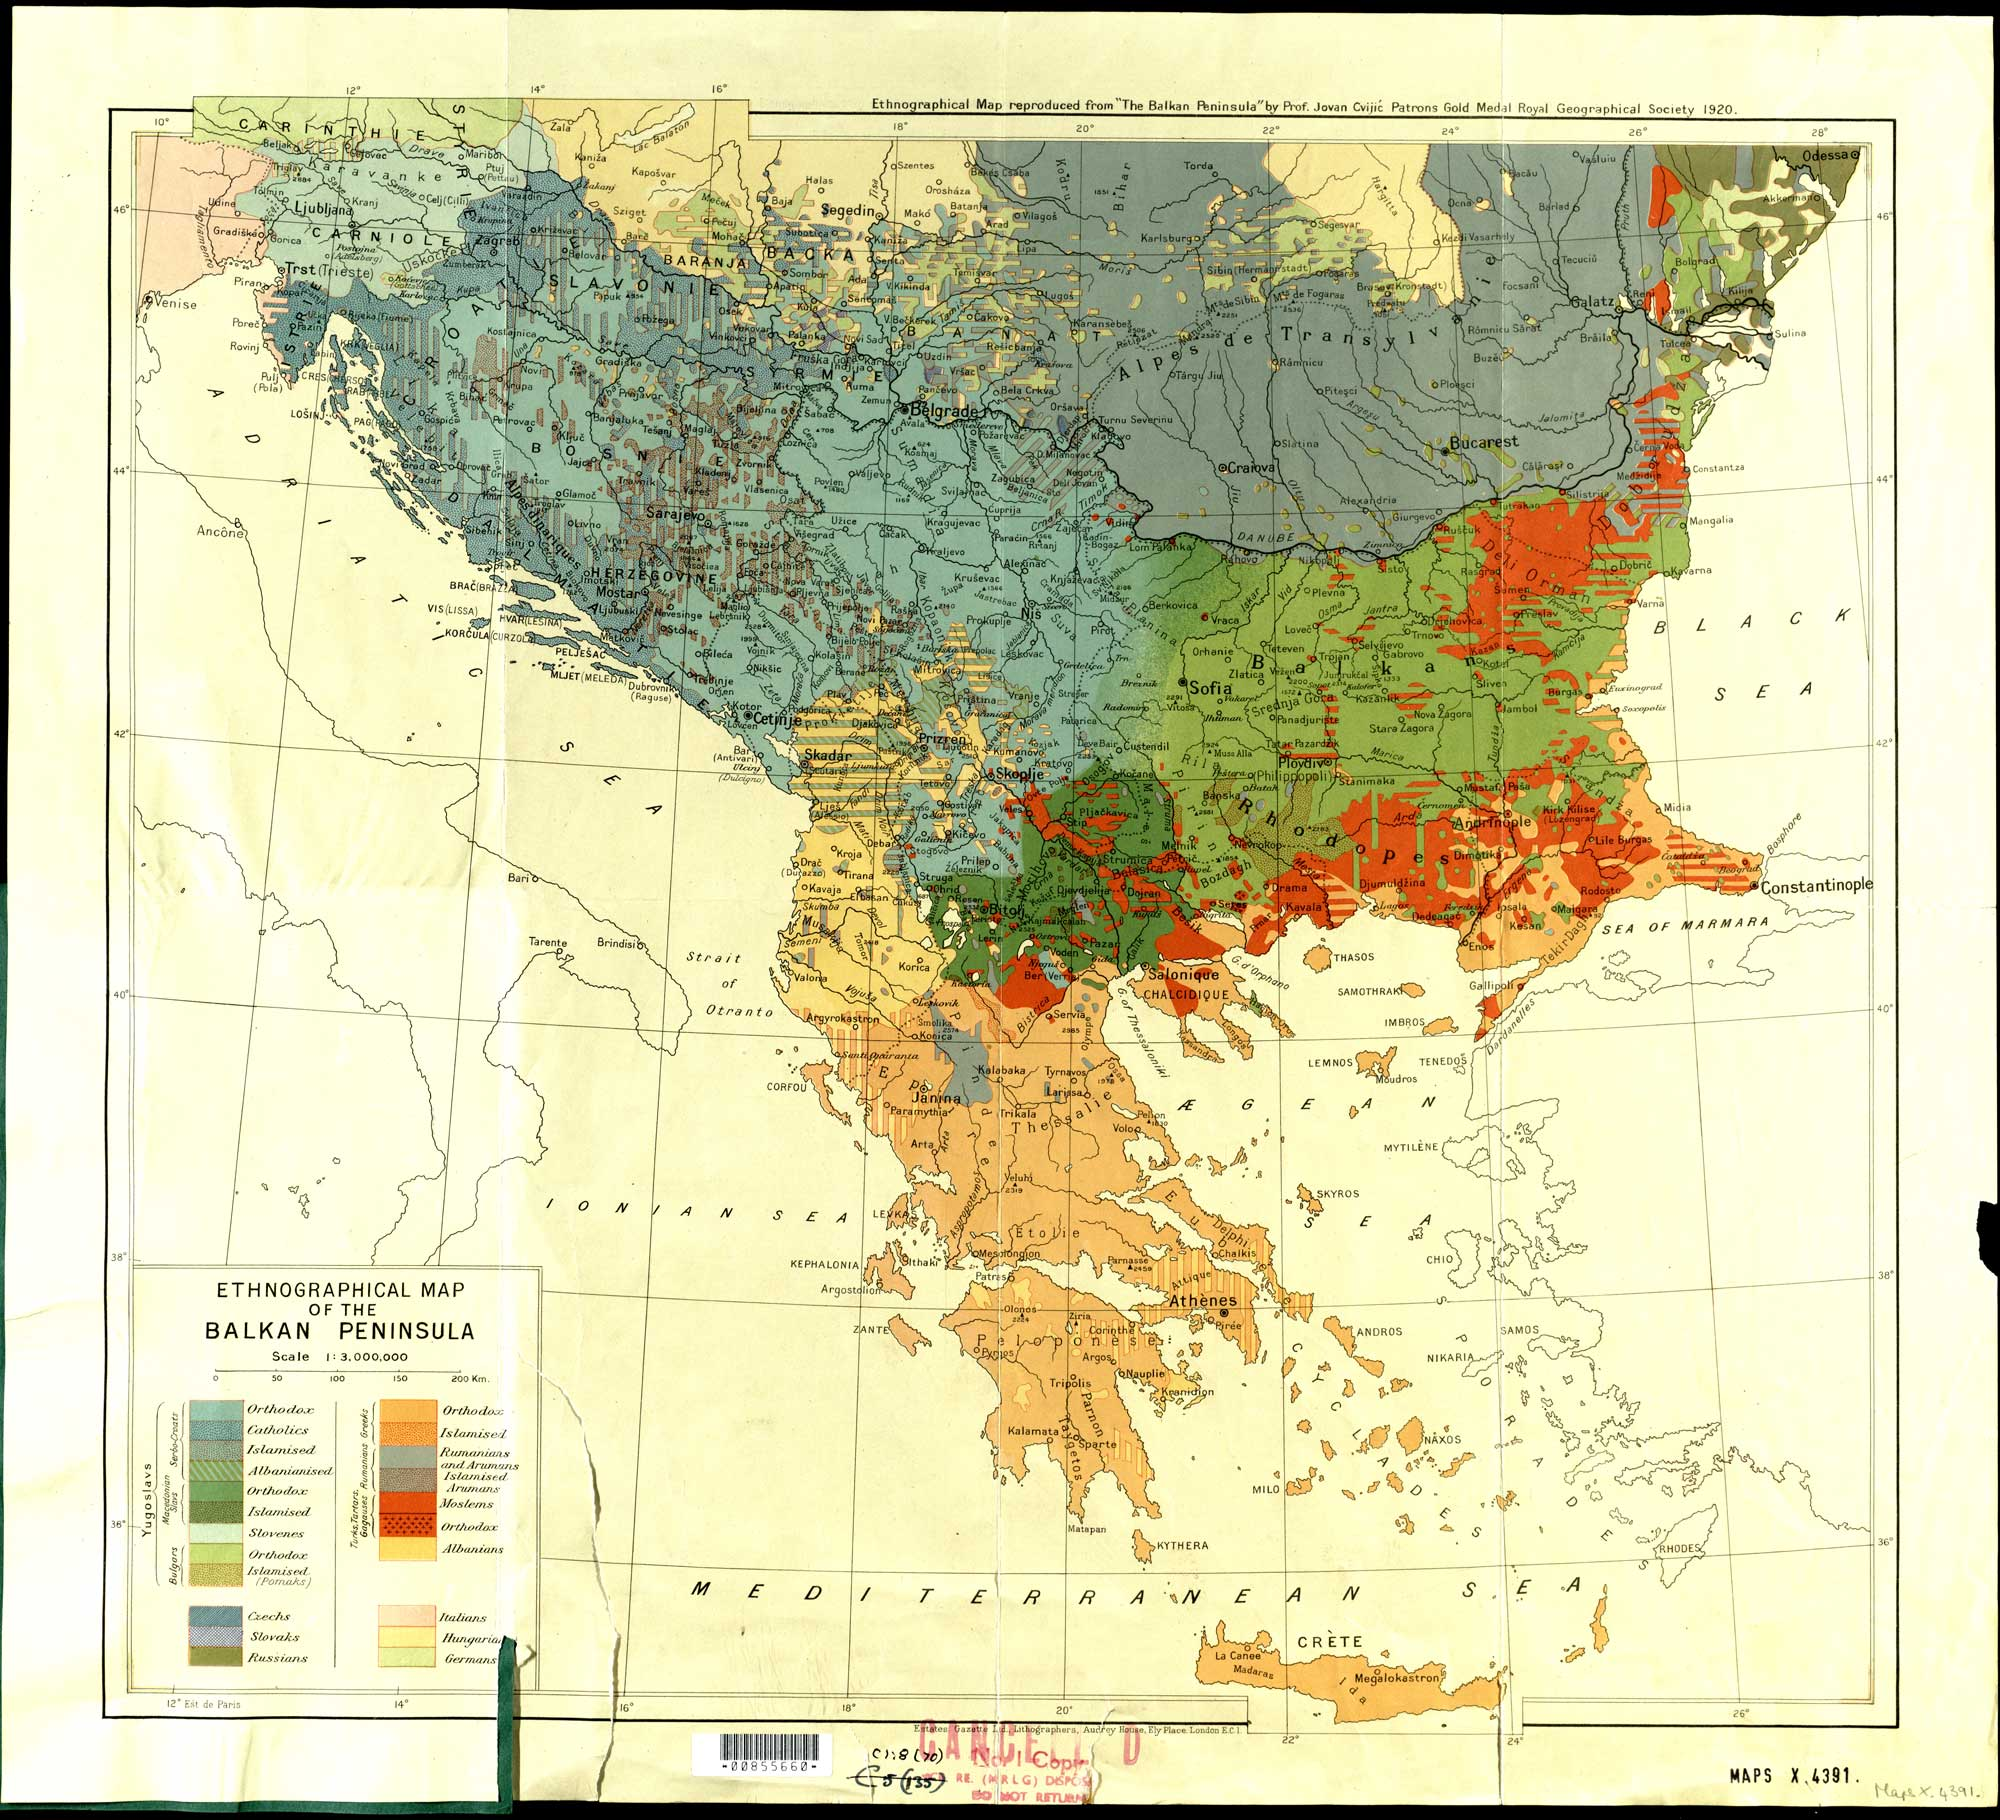 Ethnographical map reproduced from The Balkan Peninsula by Jovan Cvijić